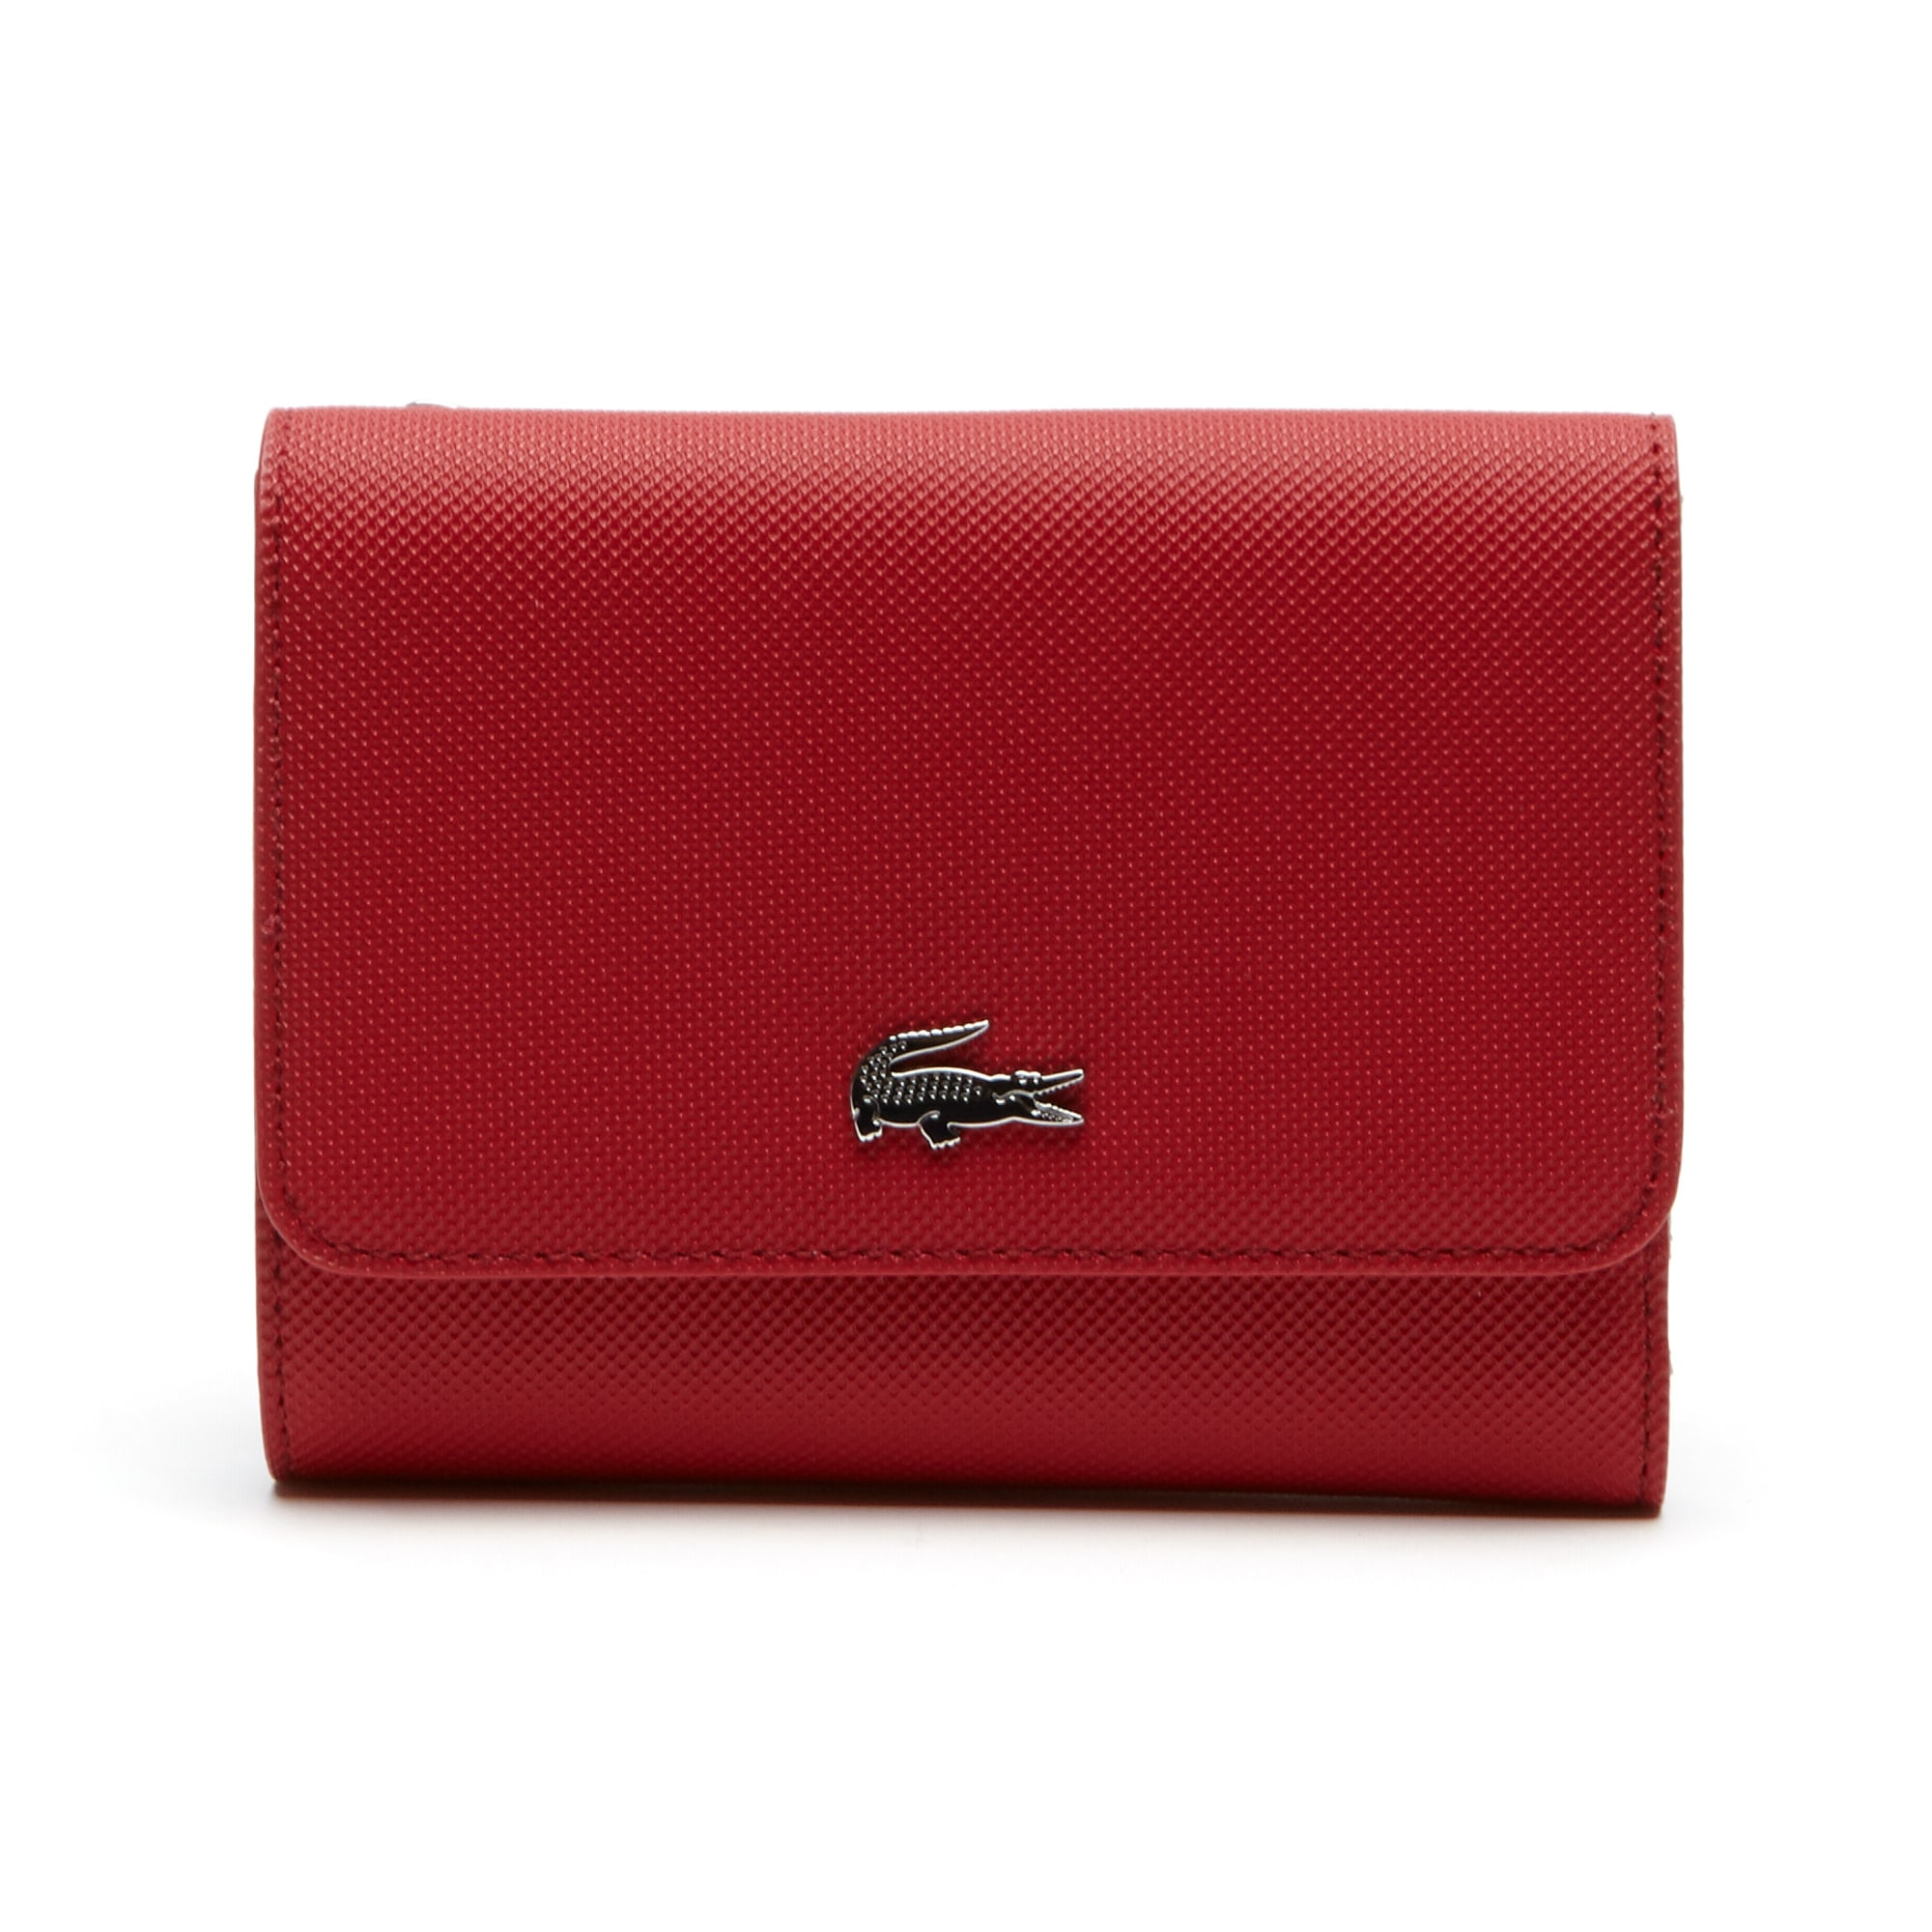 Women's Daily Classic Coated Piqué Canvas 8 Card Wallet